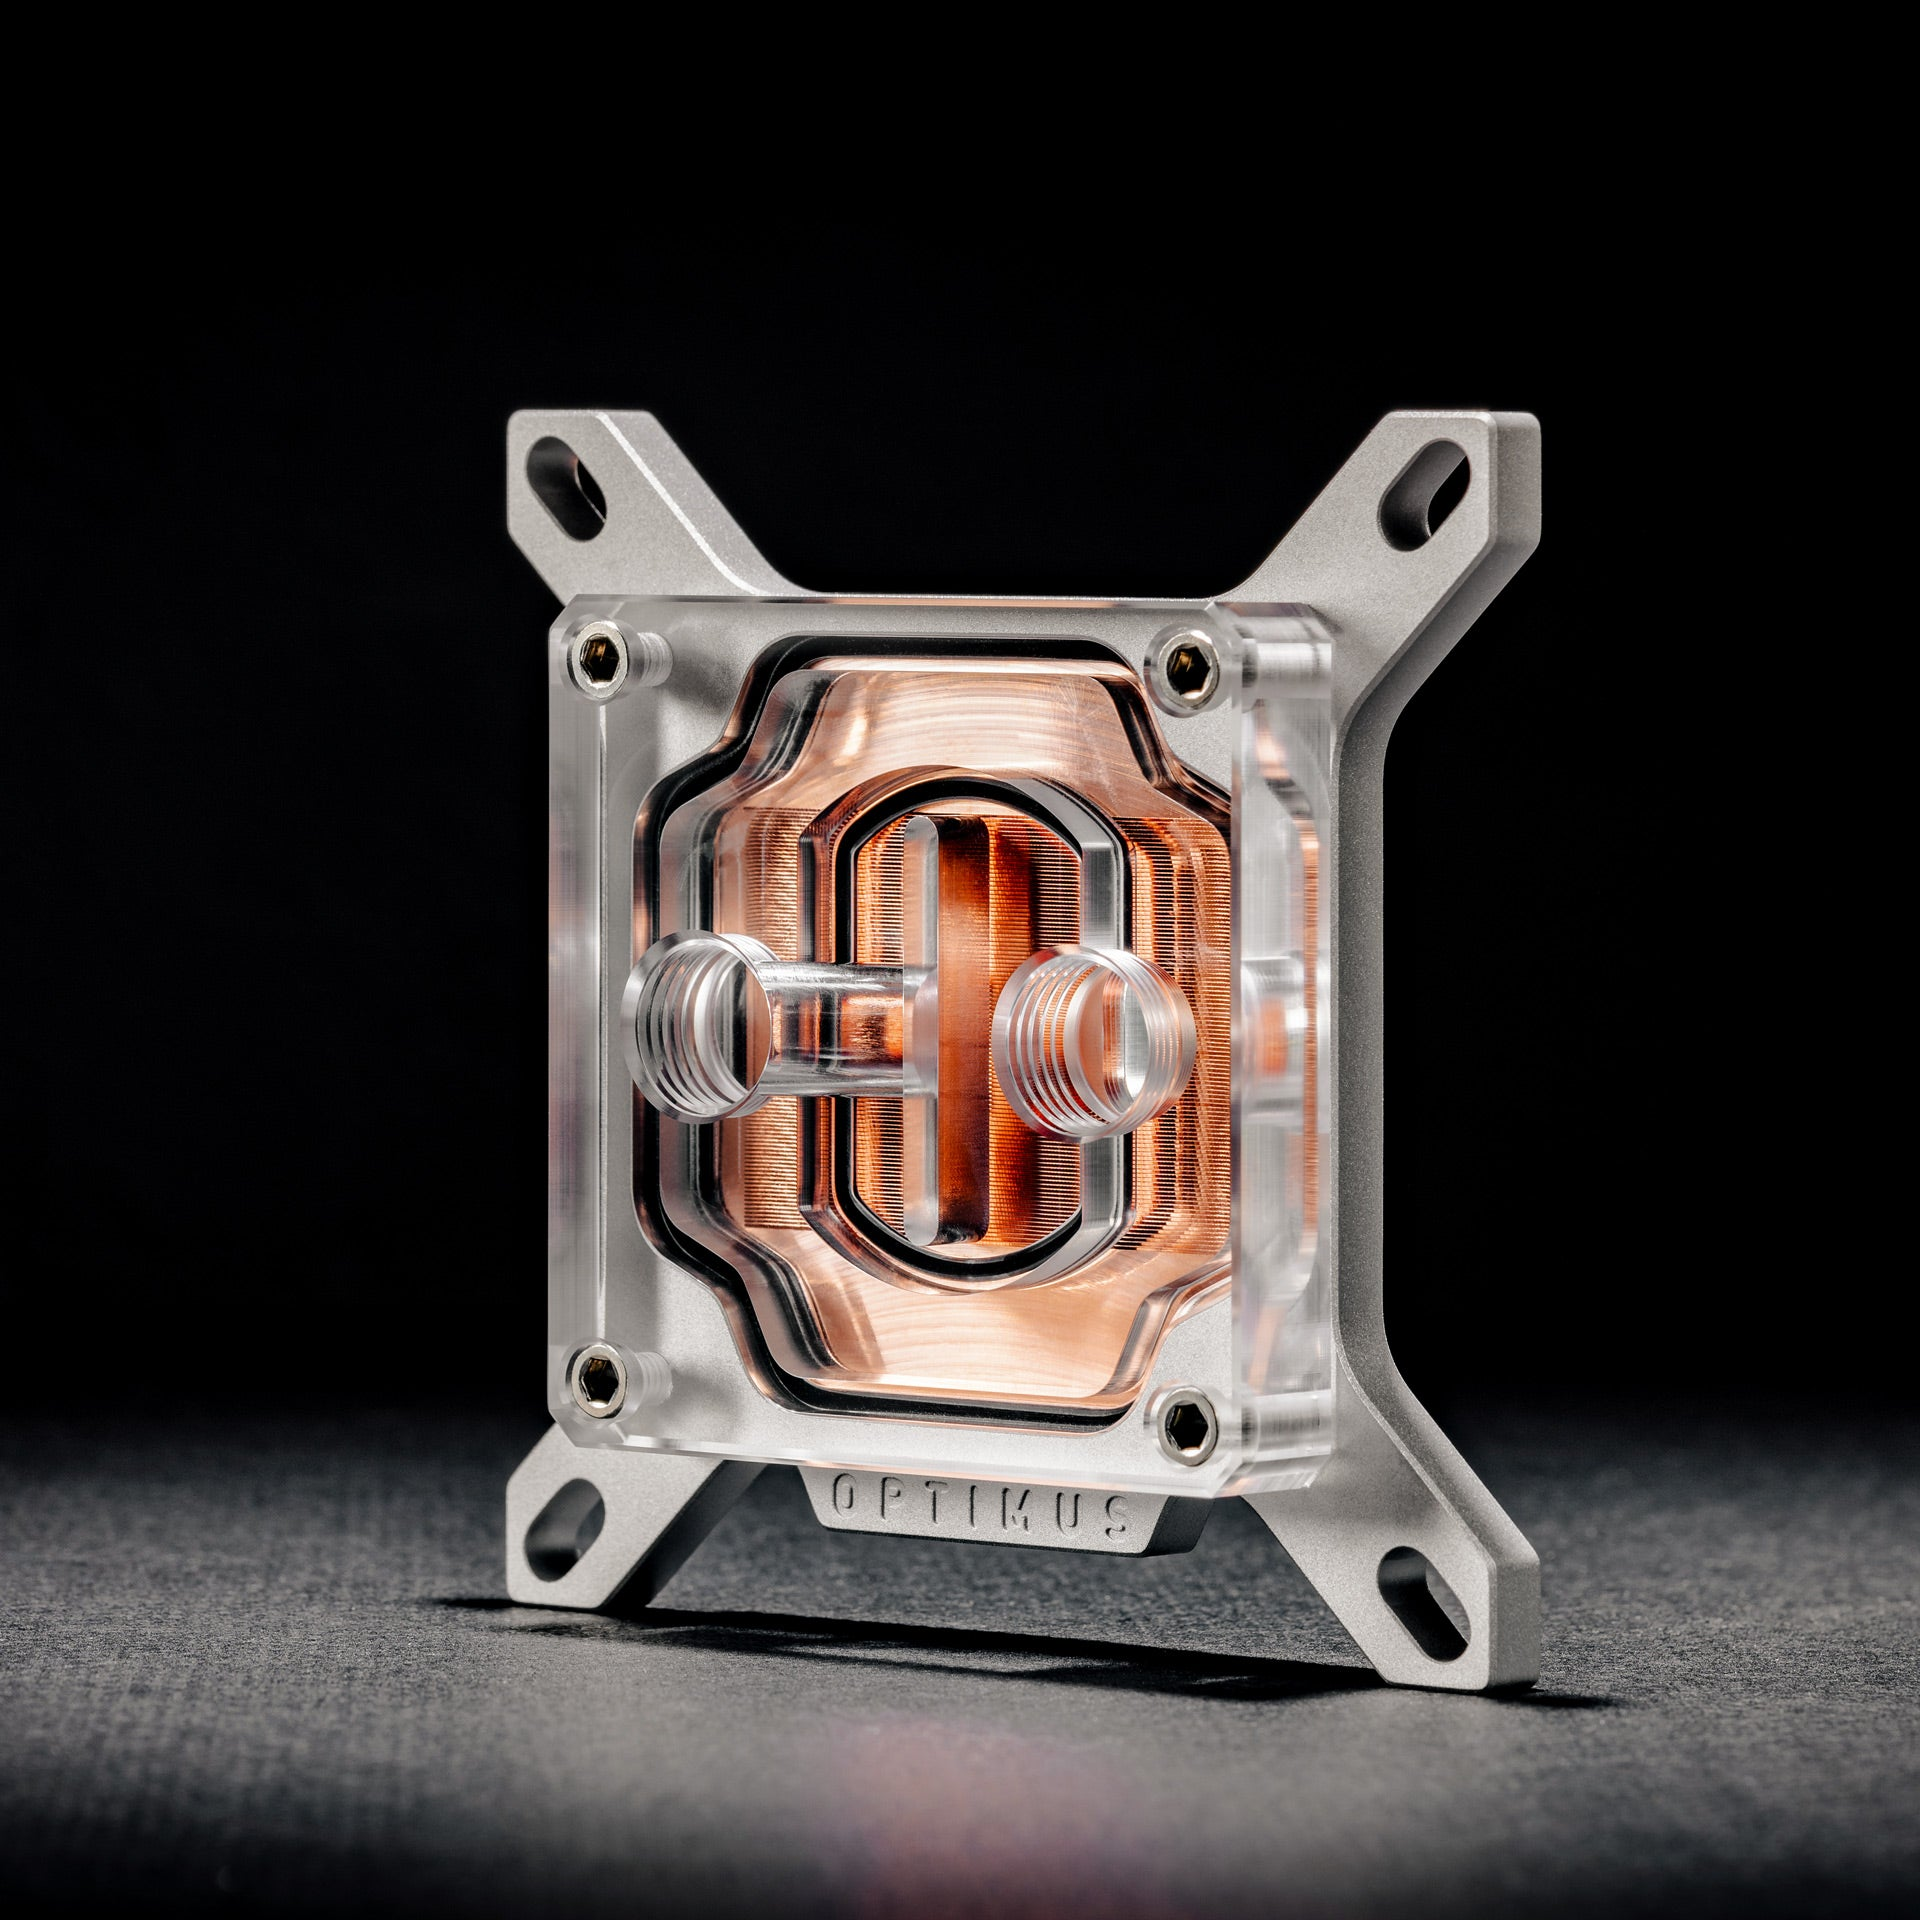 BLEMISH - Foundation CPU Block - Intel